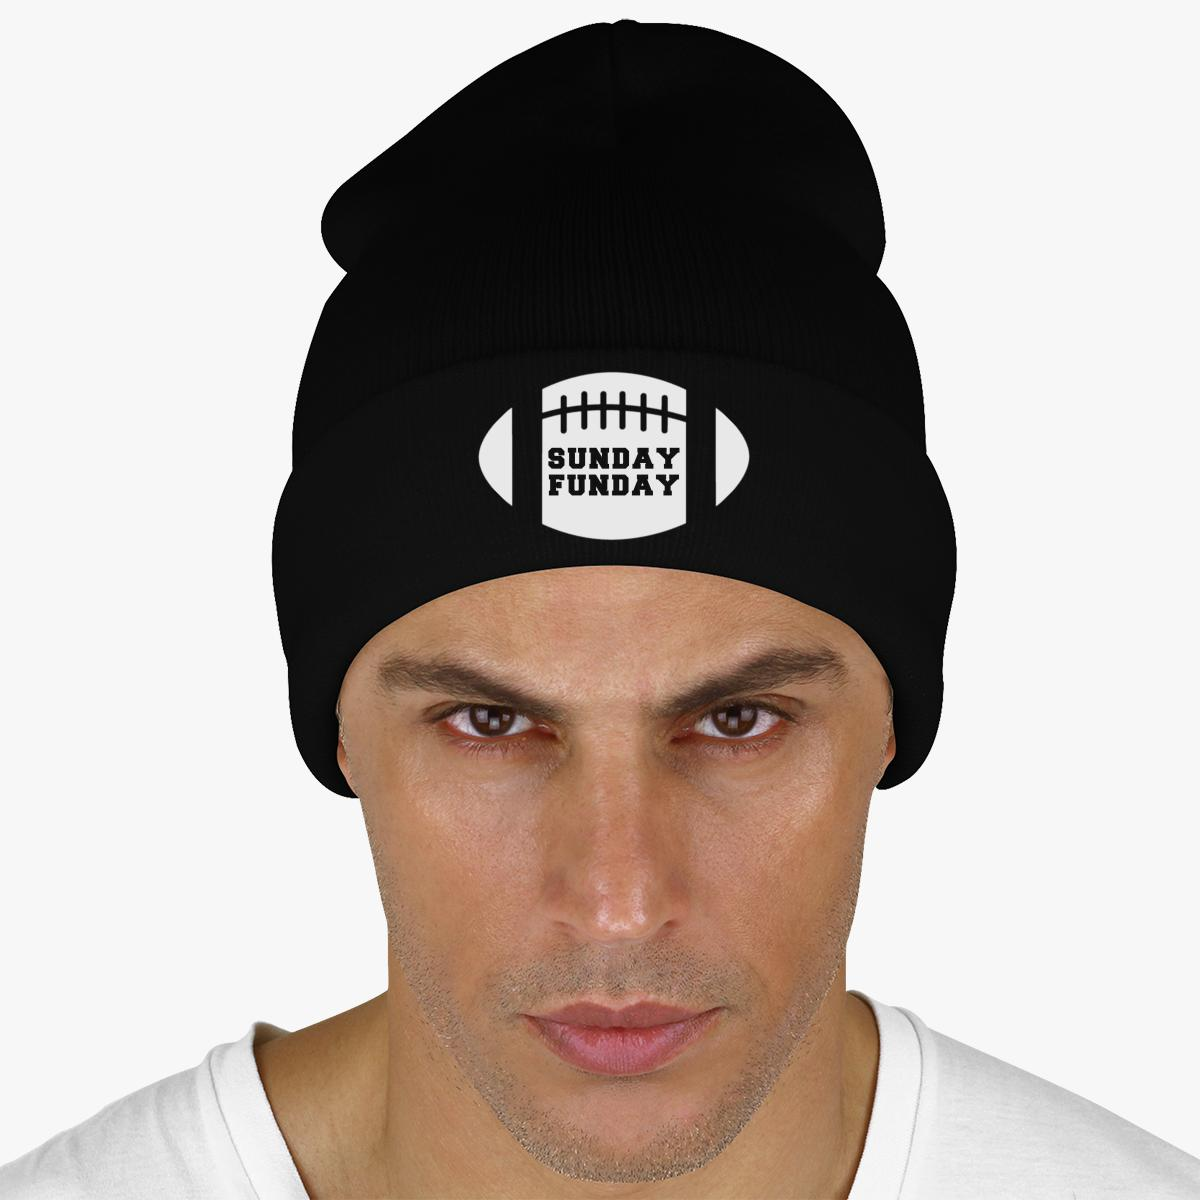 Sunday Funday Football Knit Cap